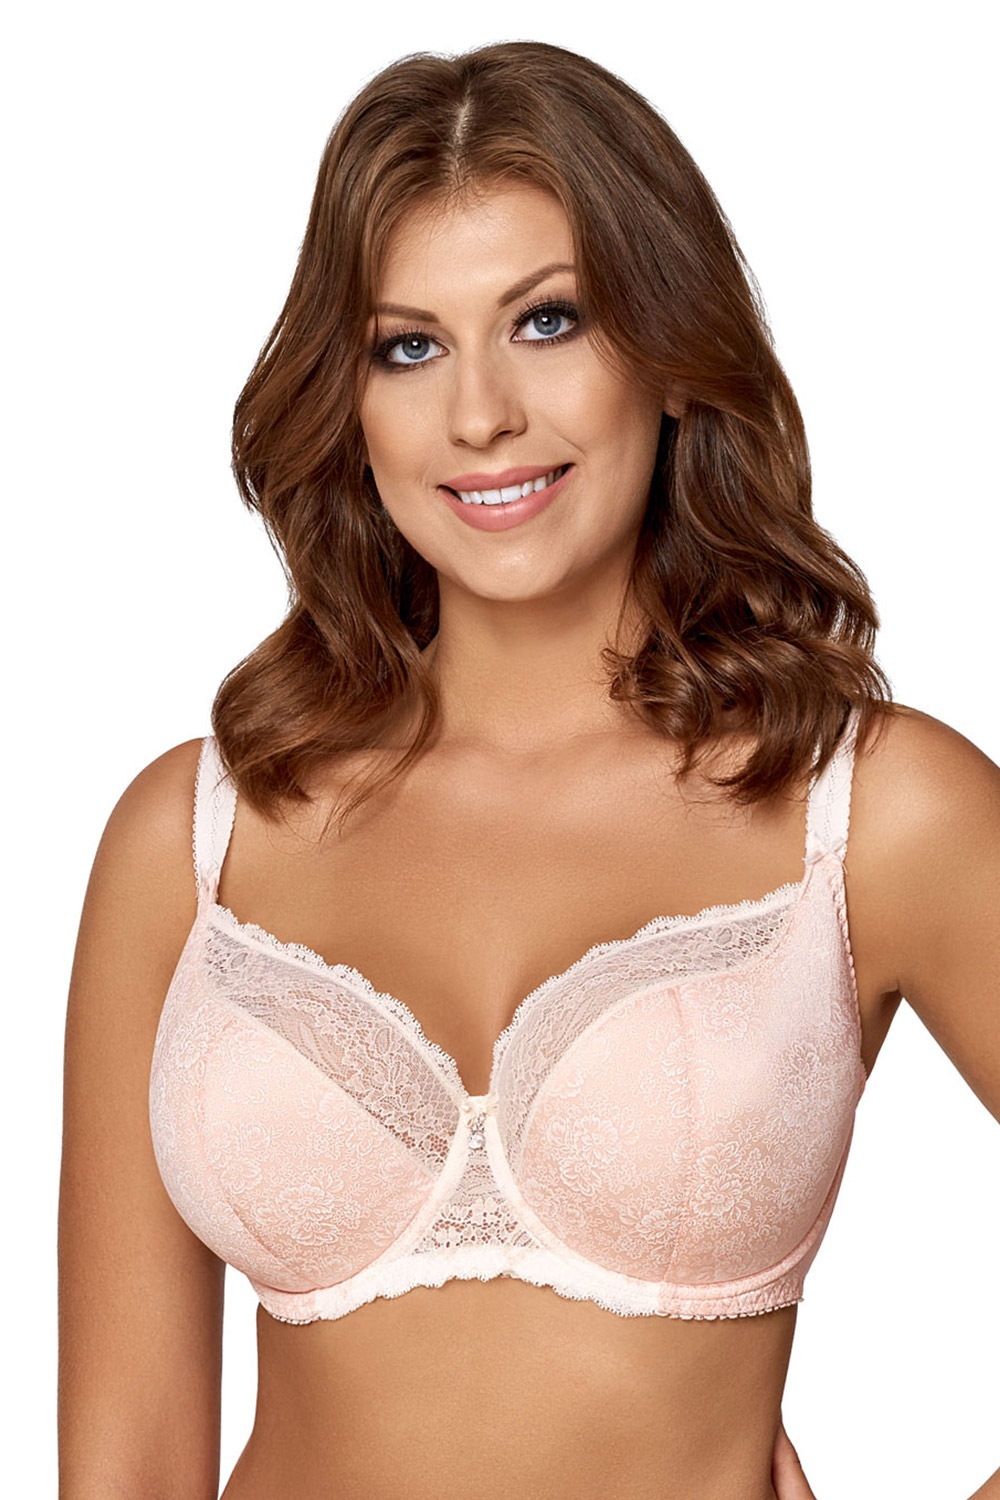 Sutien Light Rose semi-intarit de la Avalingerie